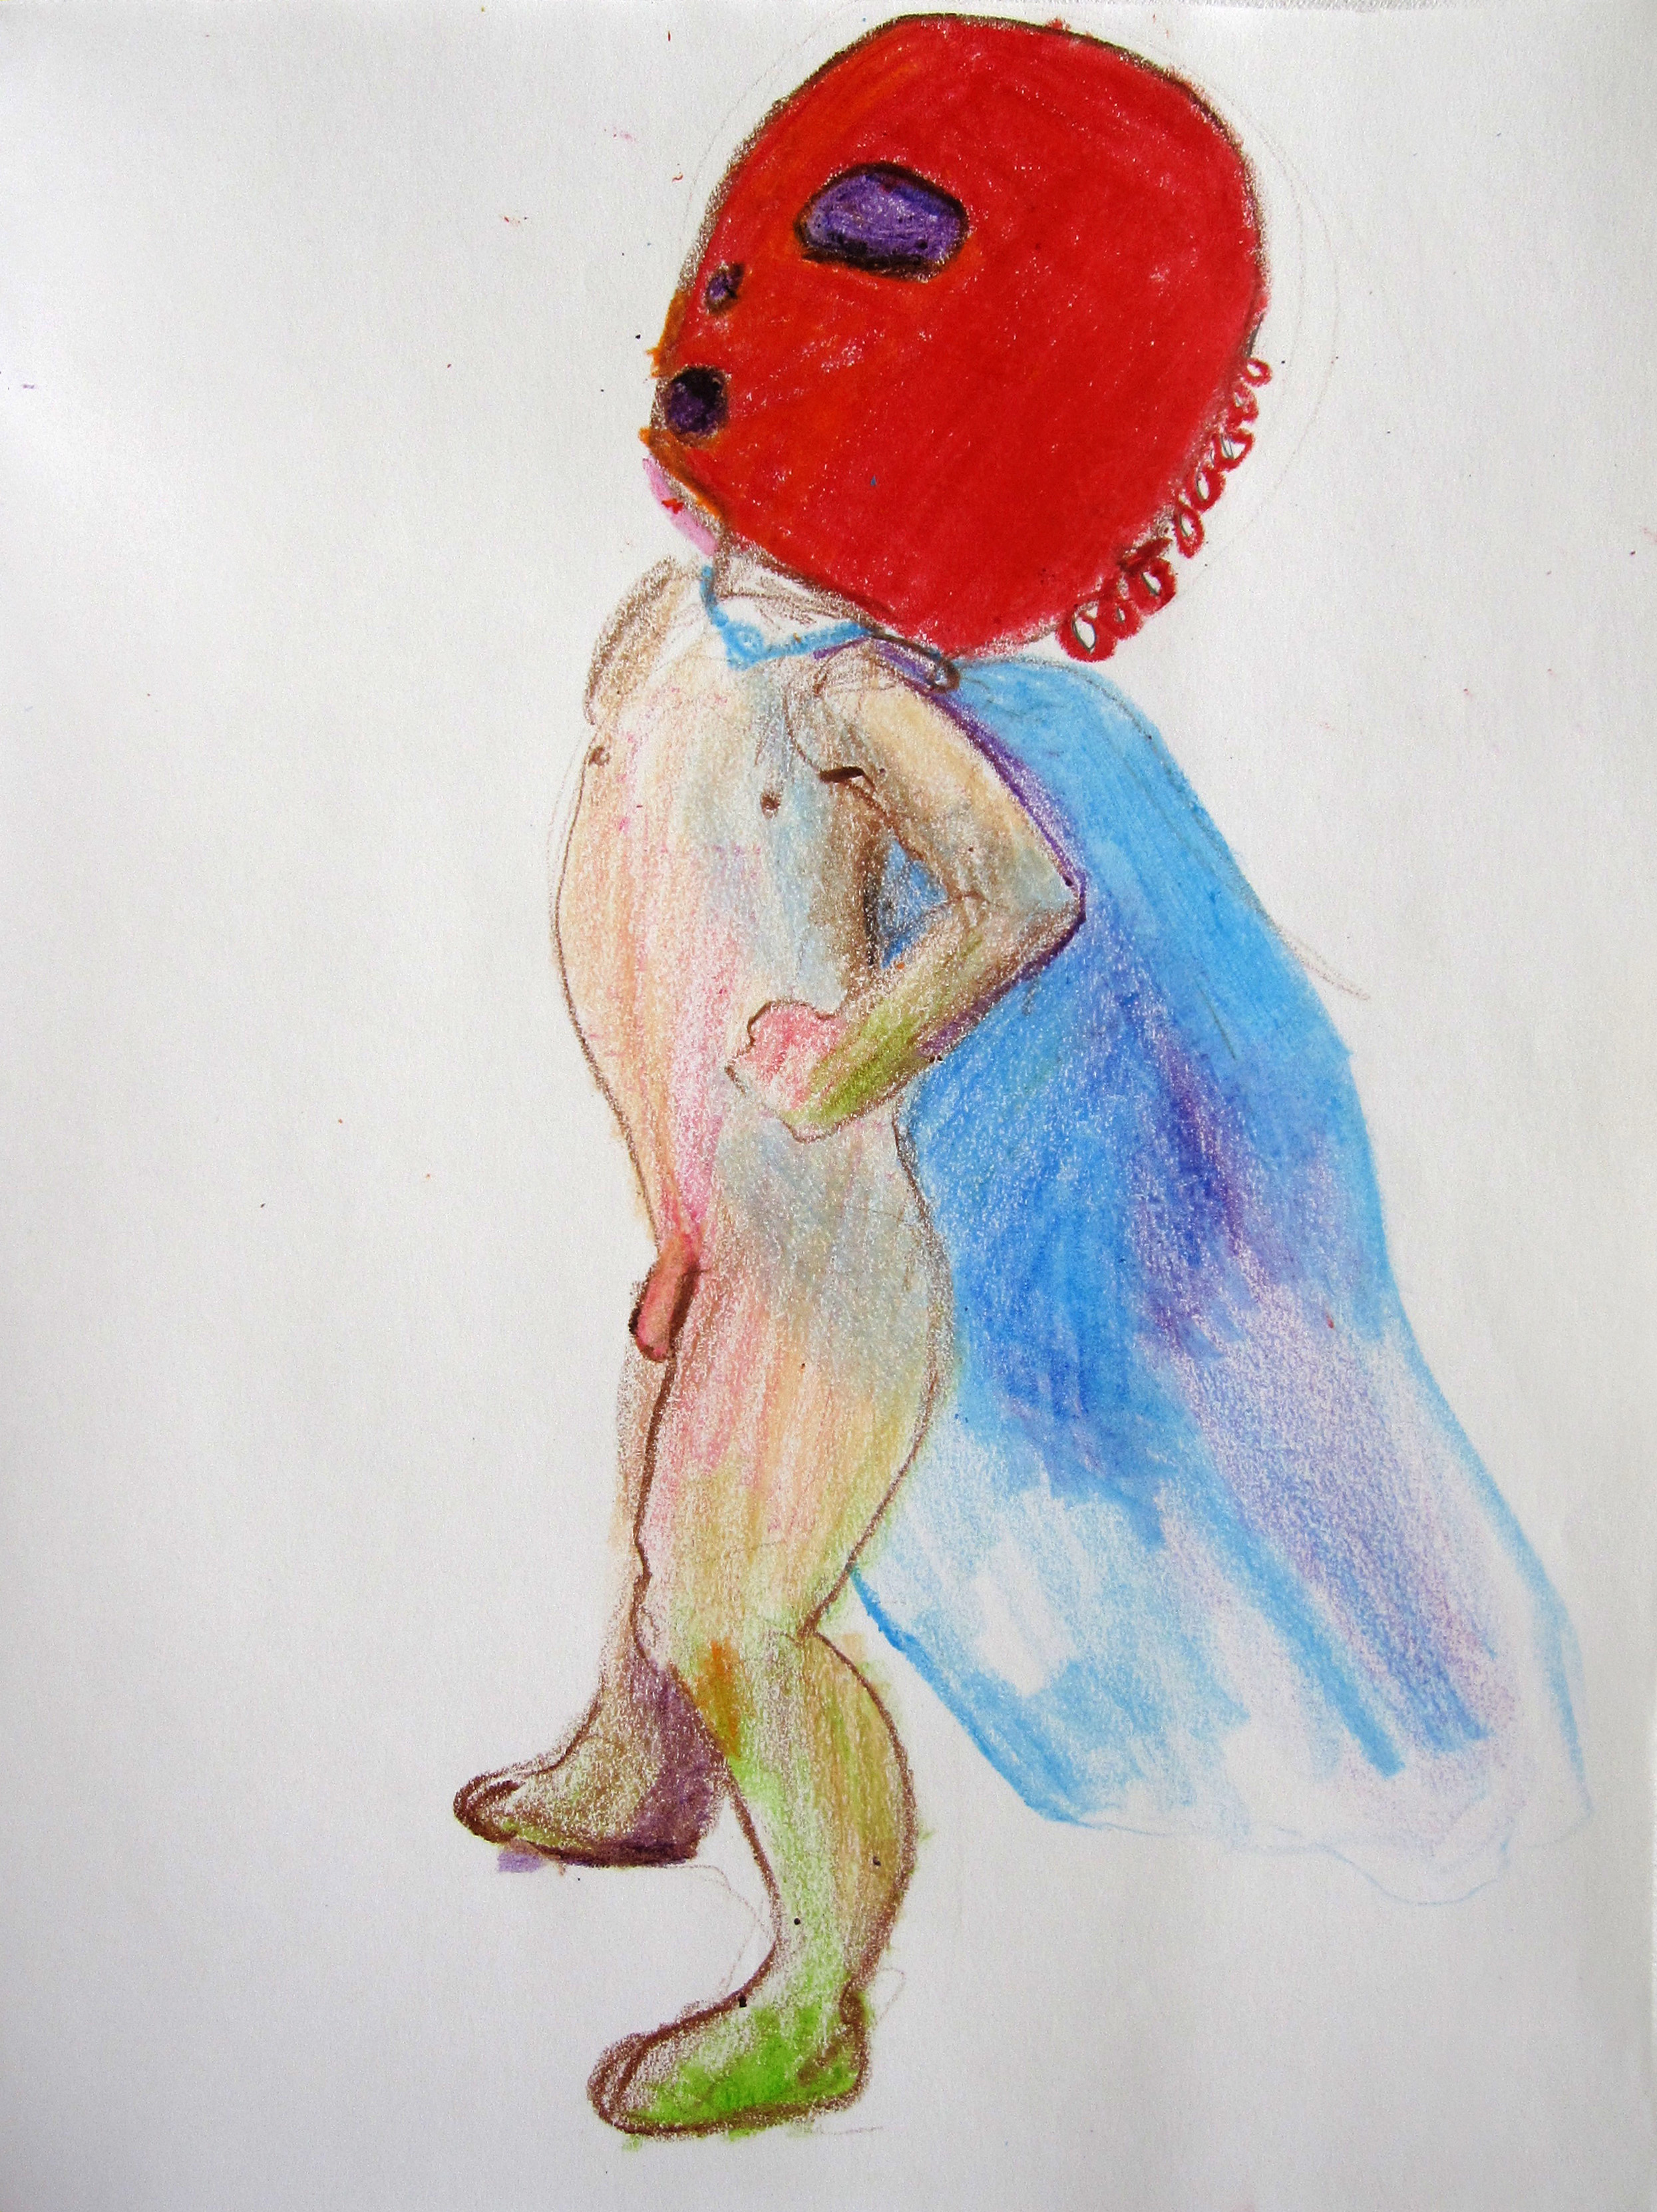 Lucha 3, 2008, Crayon on paper, 14 X11 in.